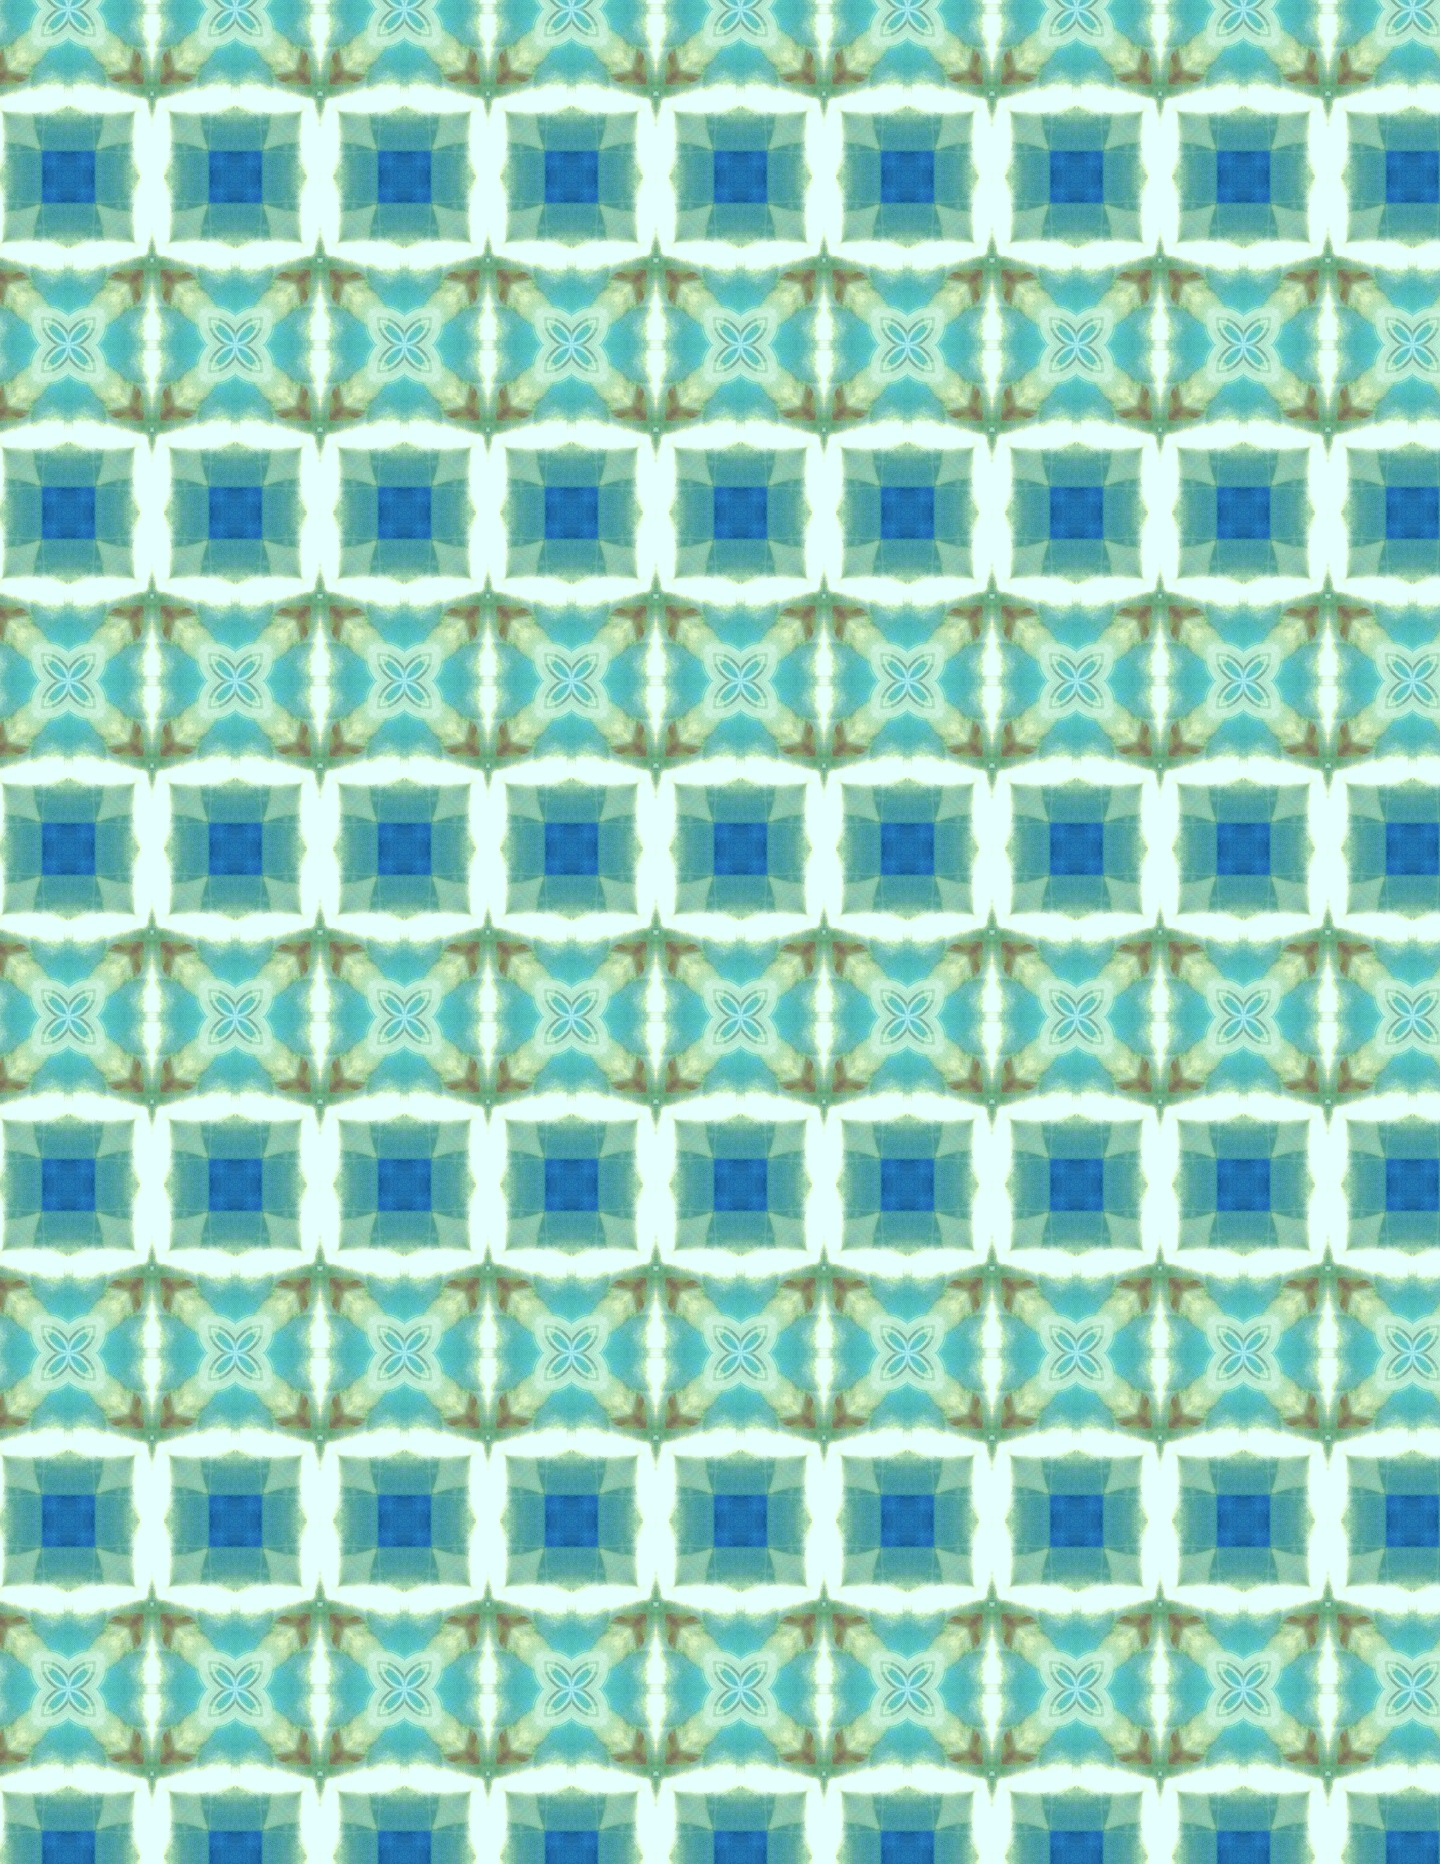 Free Printable Decorative Paper For Paper Beads Or Scrapbooking - Free Printable Paper